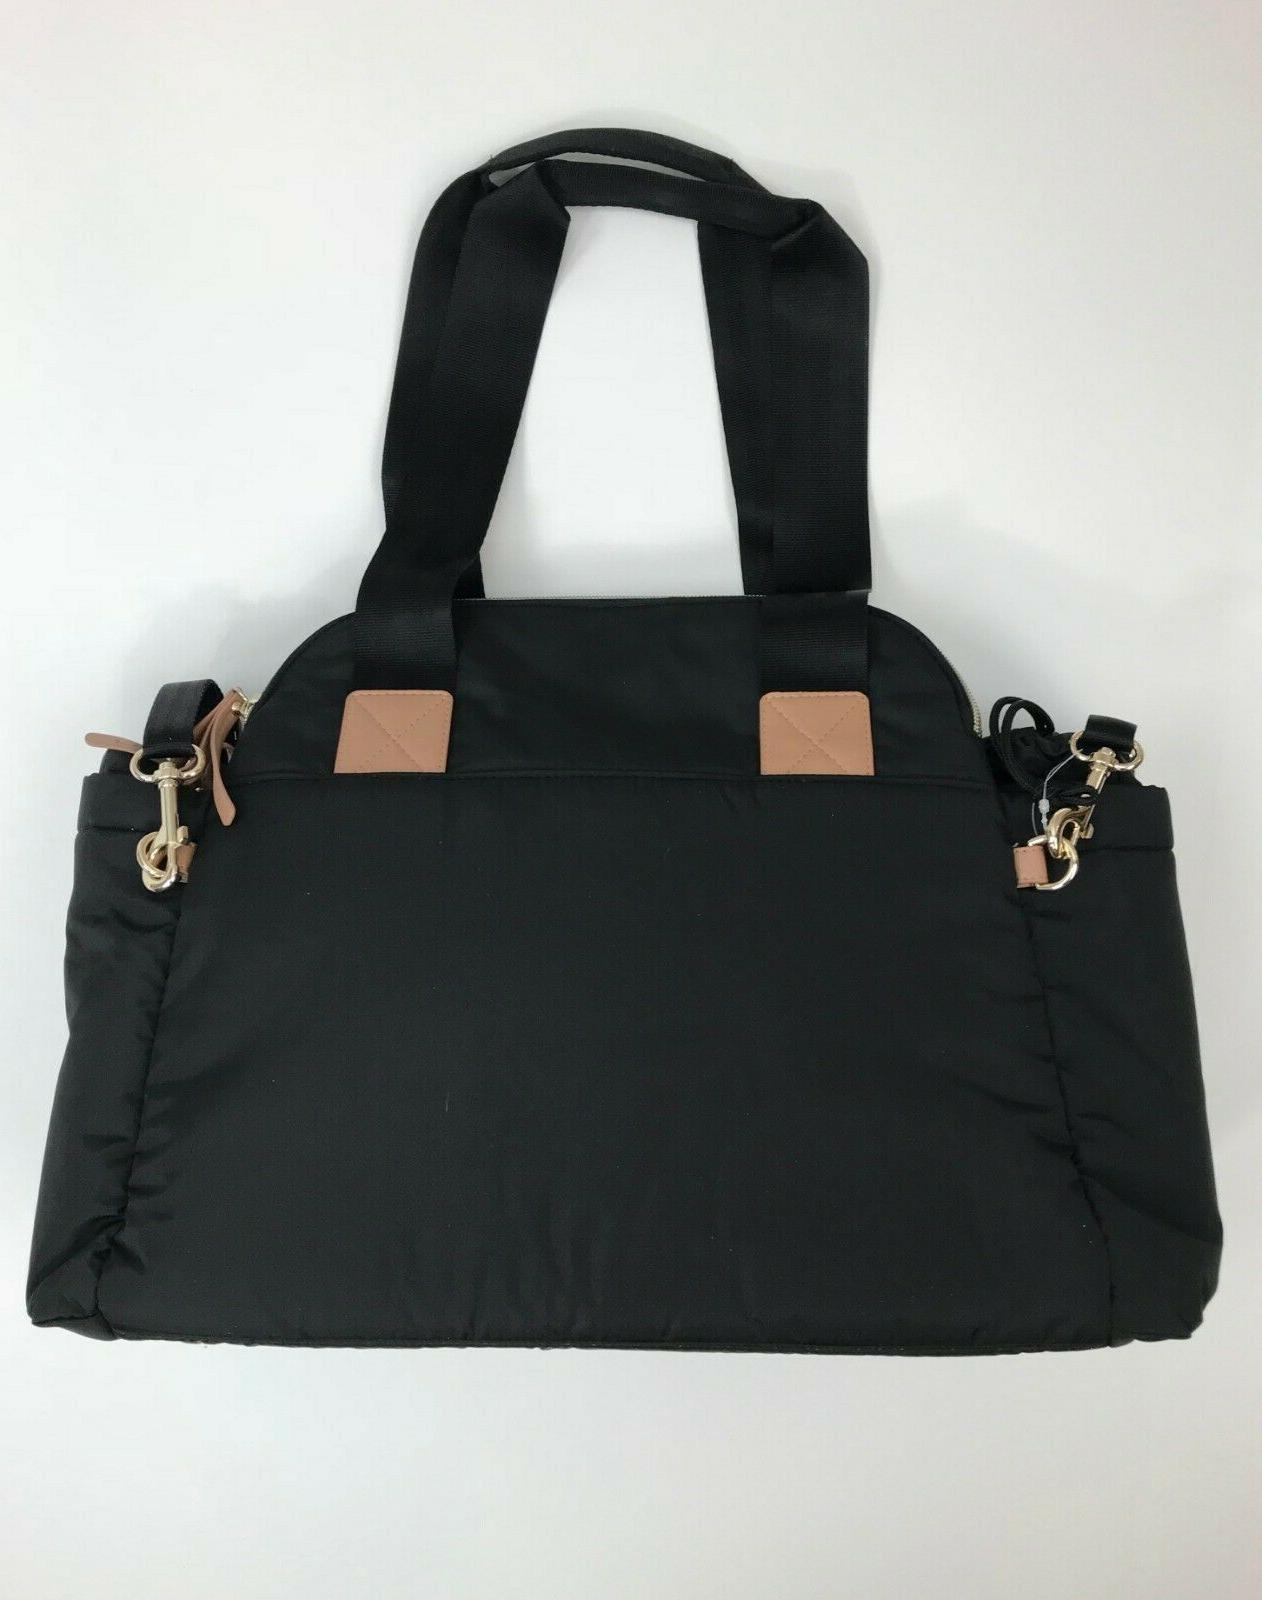 Suite By 6-In-1 Diaper Satchel Tote NWT Black Changing Pad